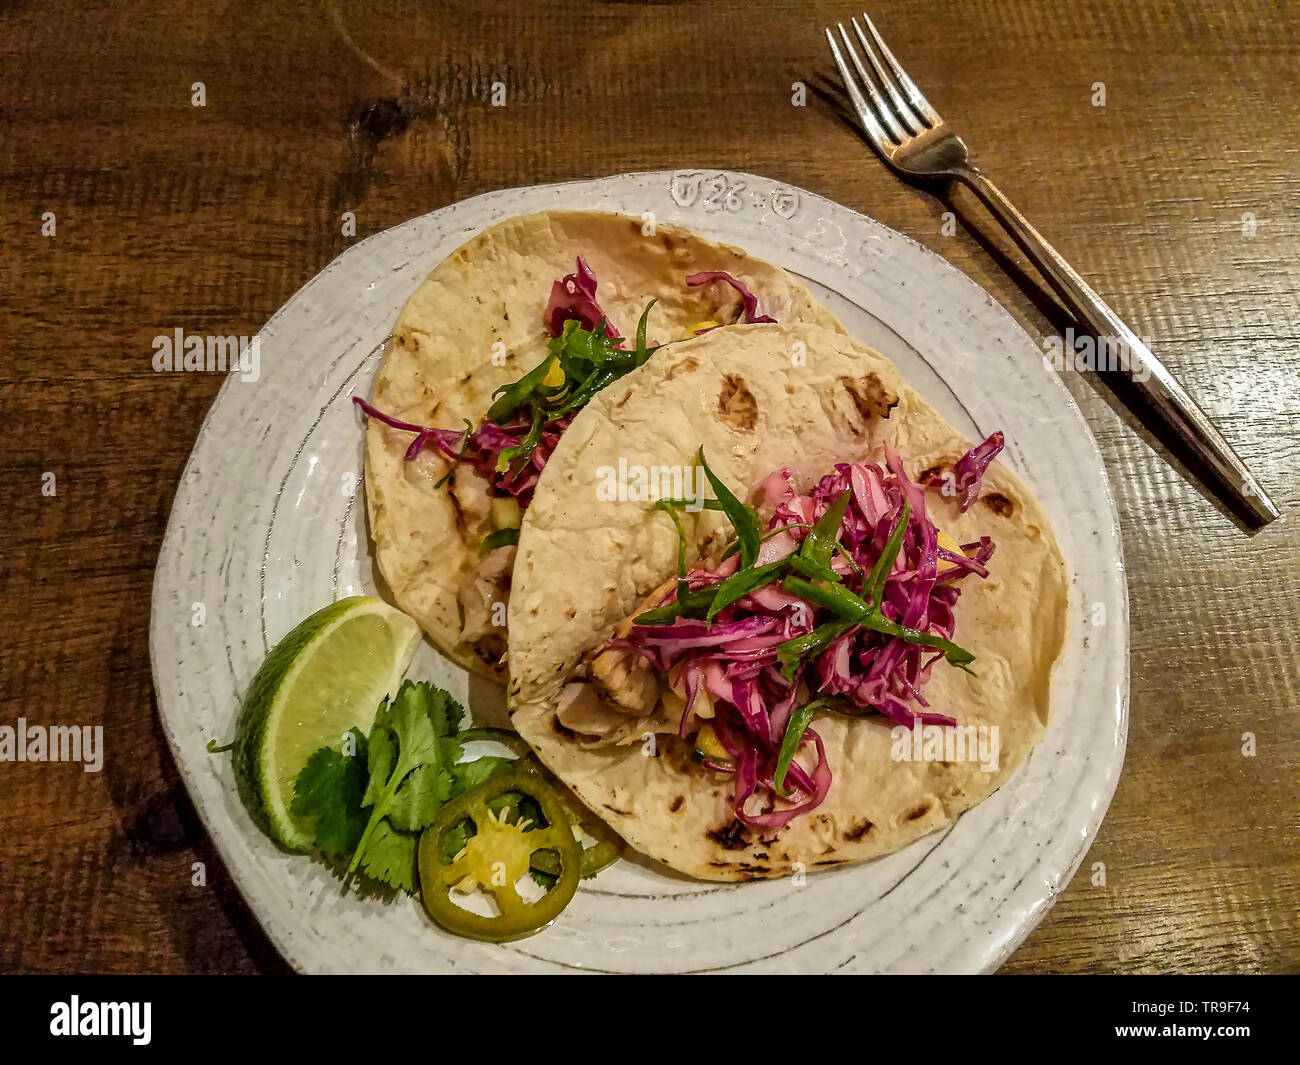 Grilled Mahi Tacos with shredded cabbage and lime. - Stock Image